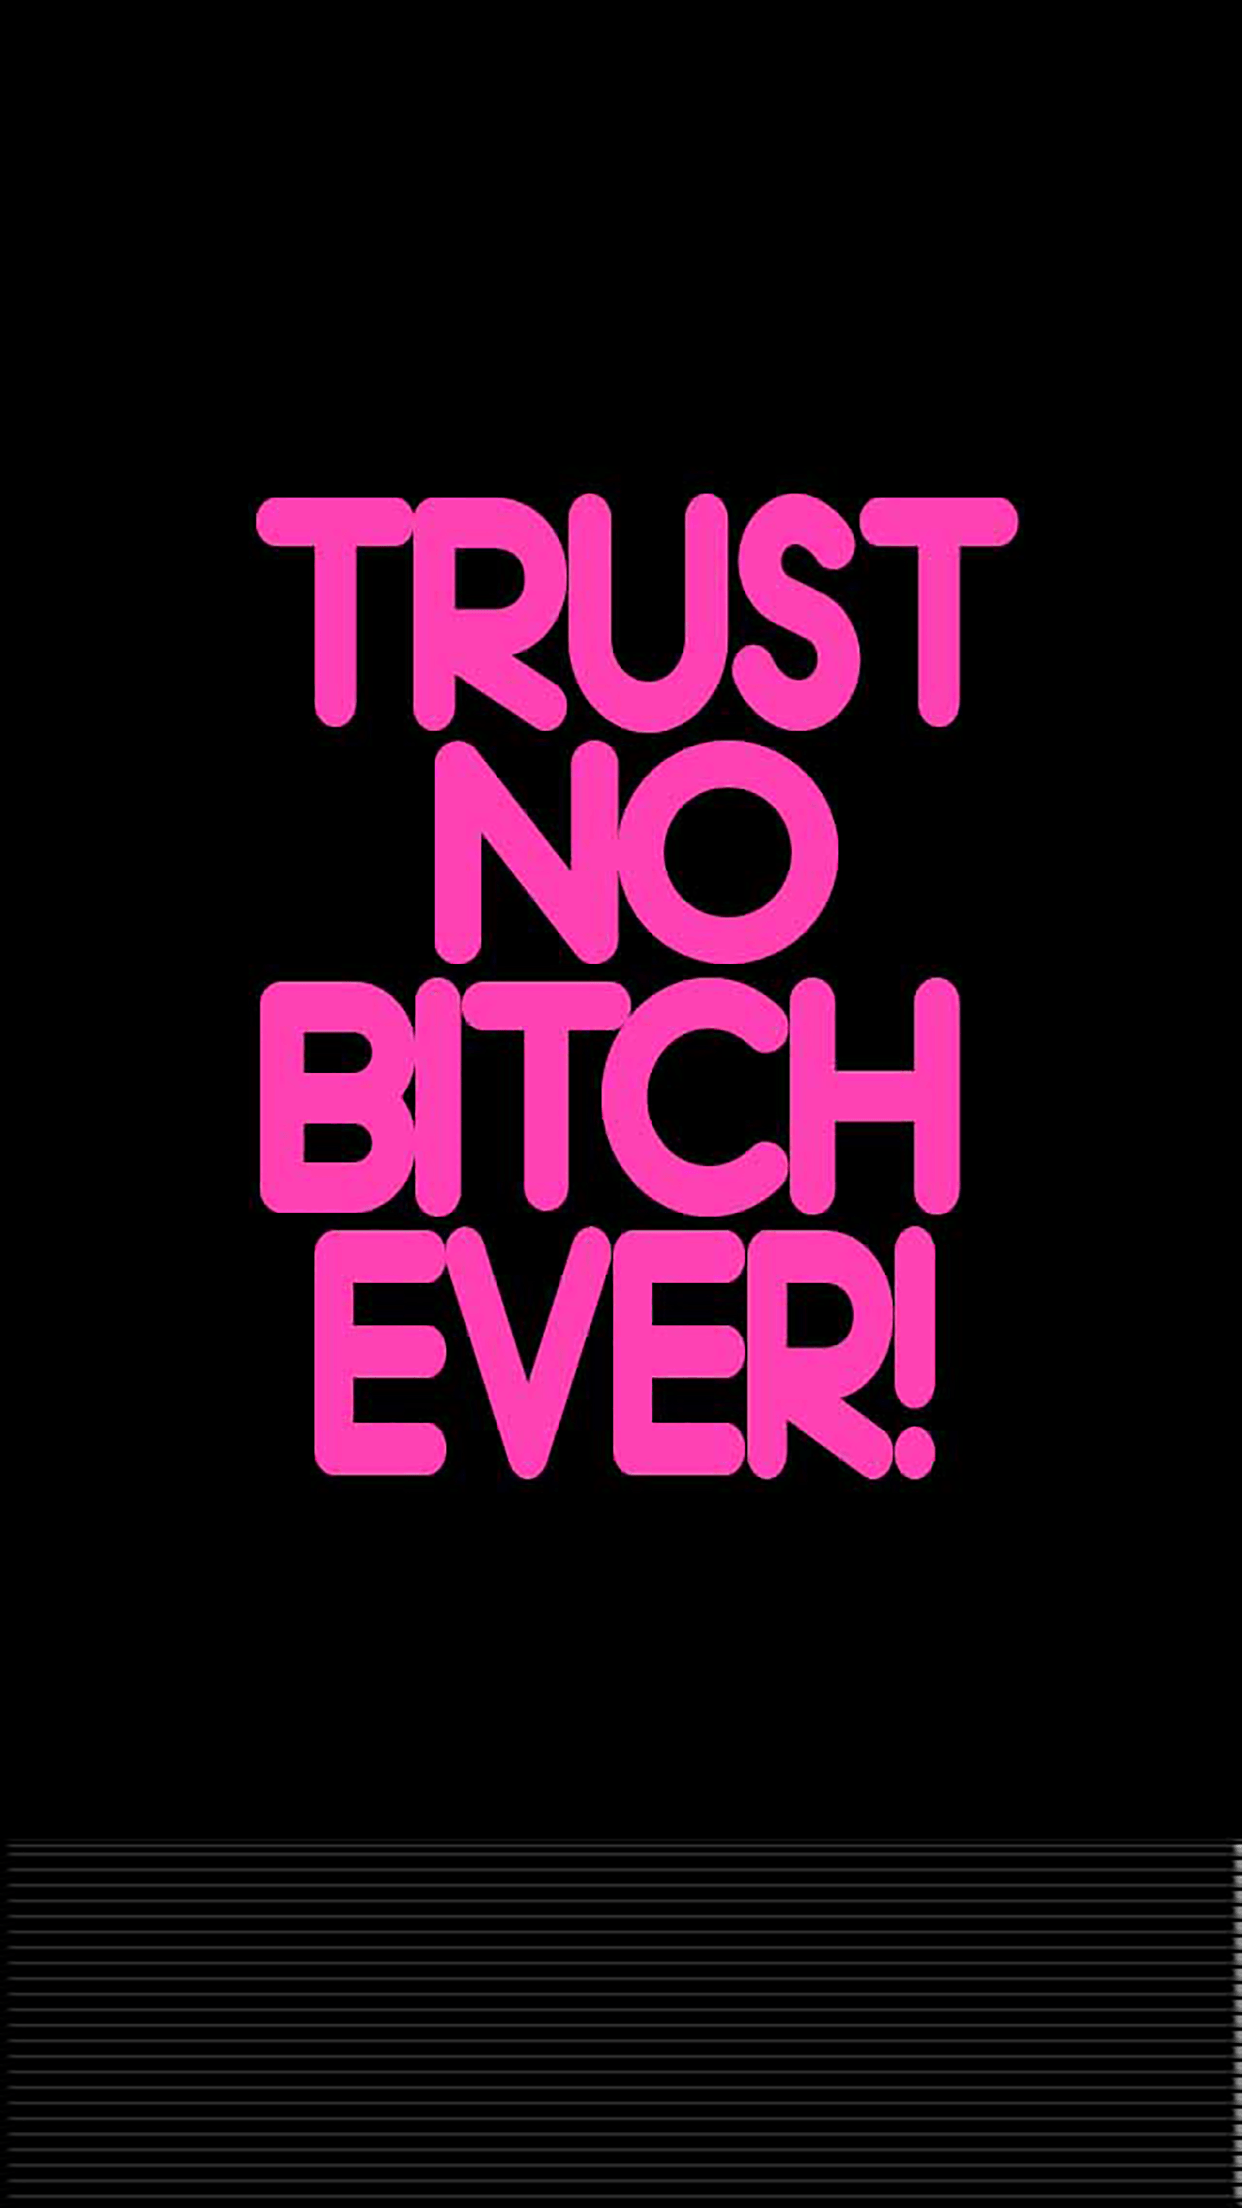 Trust No Bitch Ever » lockscreen for iPhone 6Plus